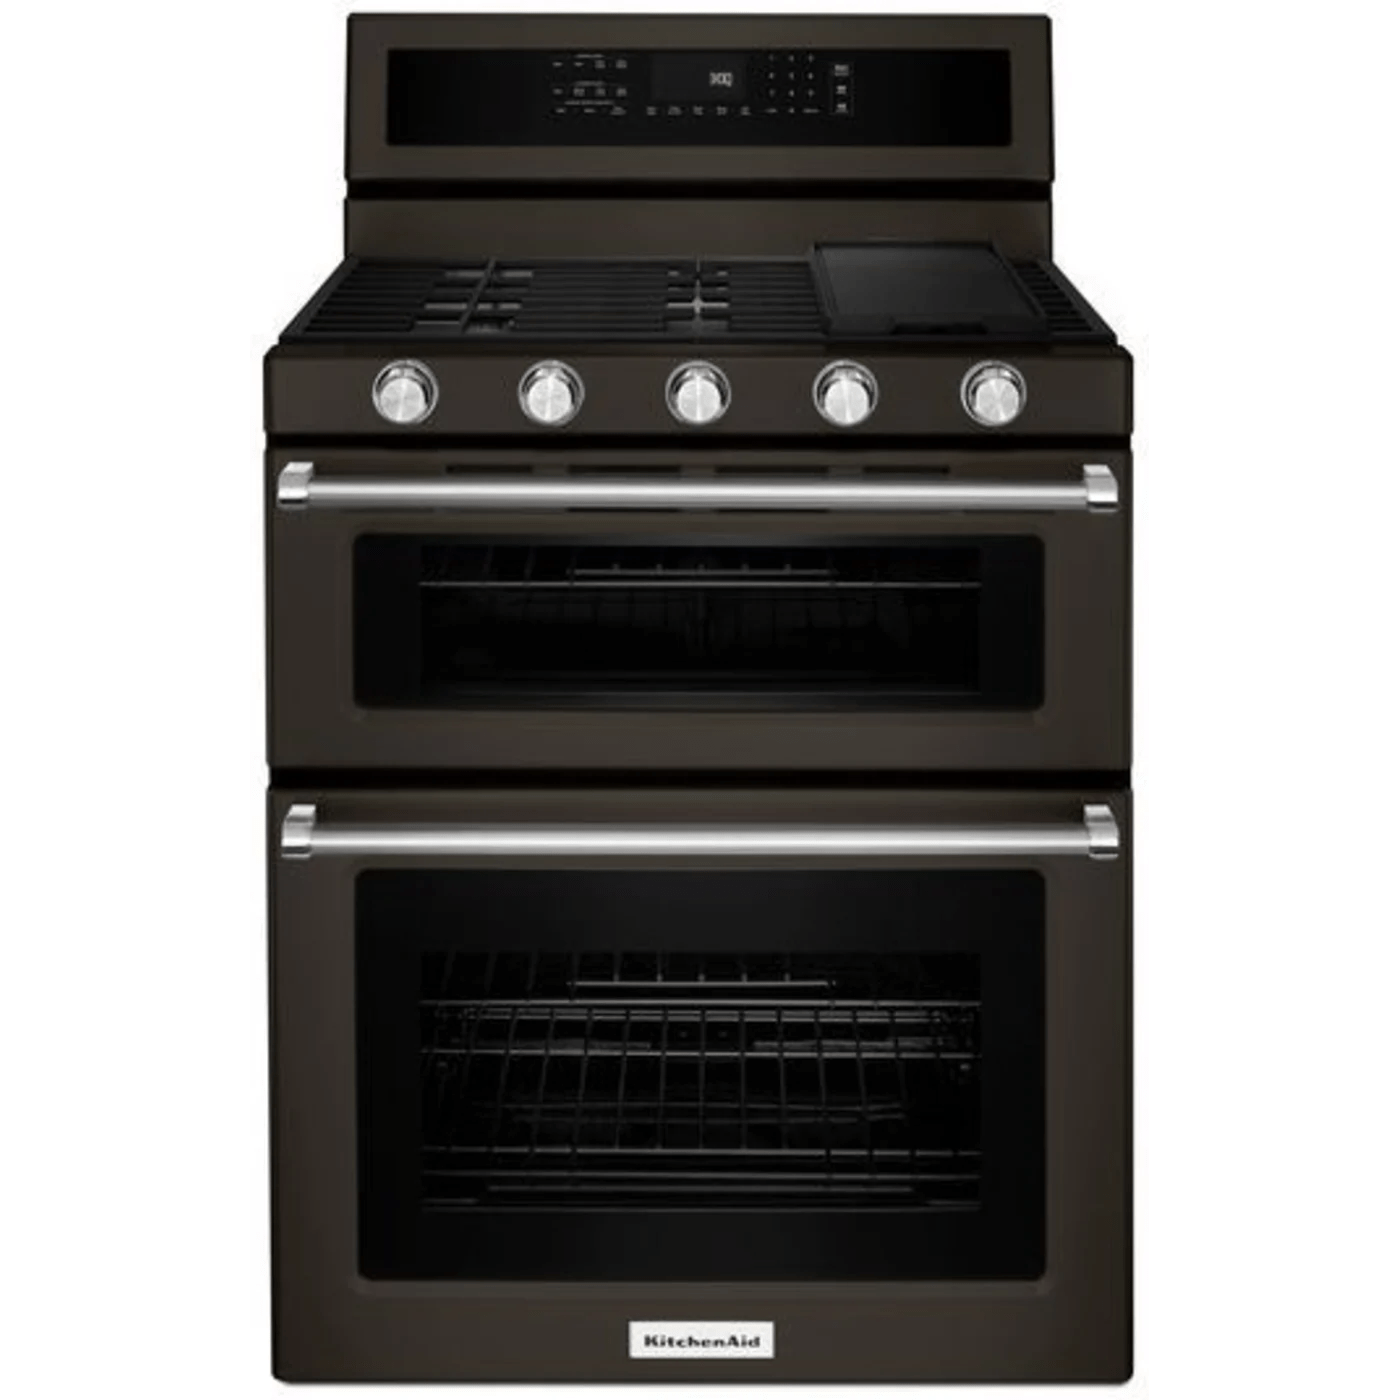 kitchen aid gas cooktop large islands with seating kfgd500ebs by kitchenaid natural ranges goedekers com